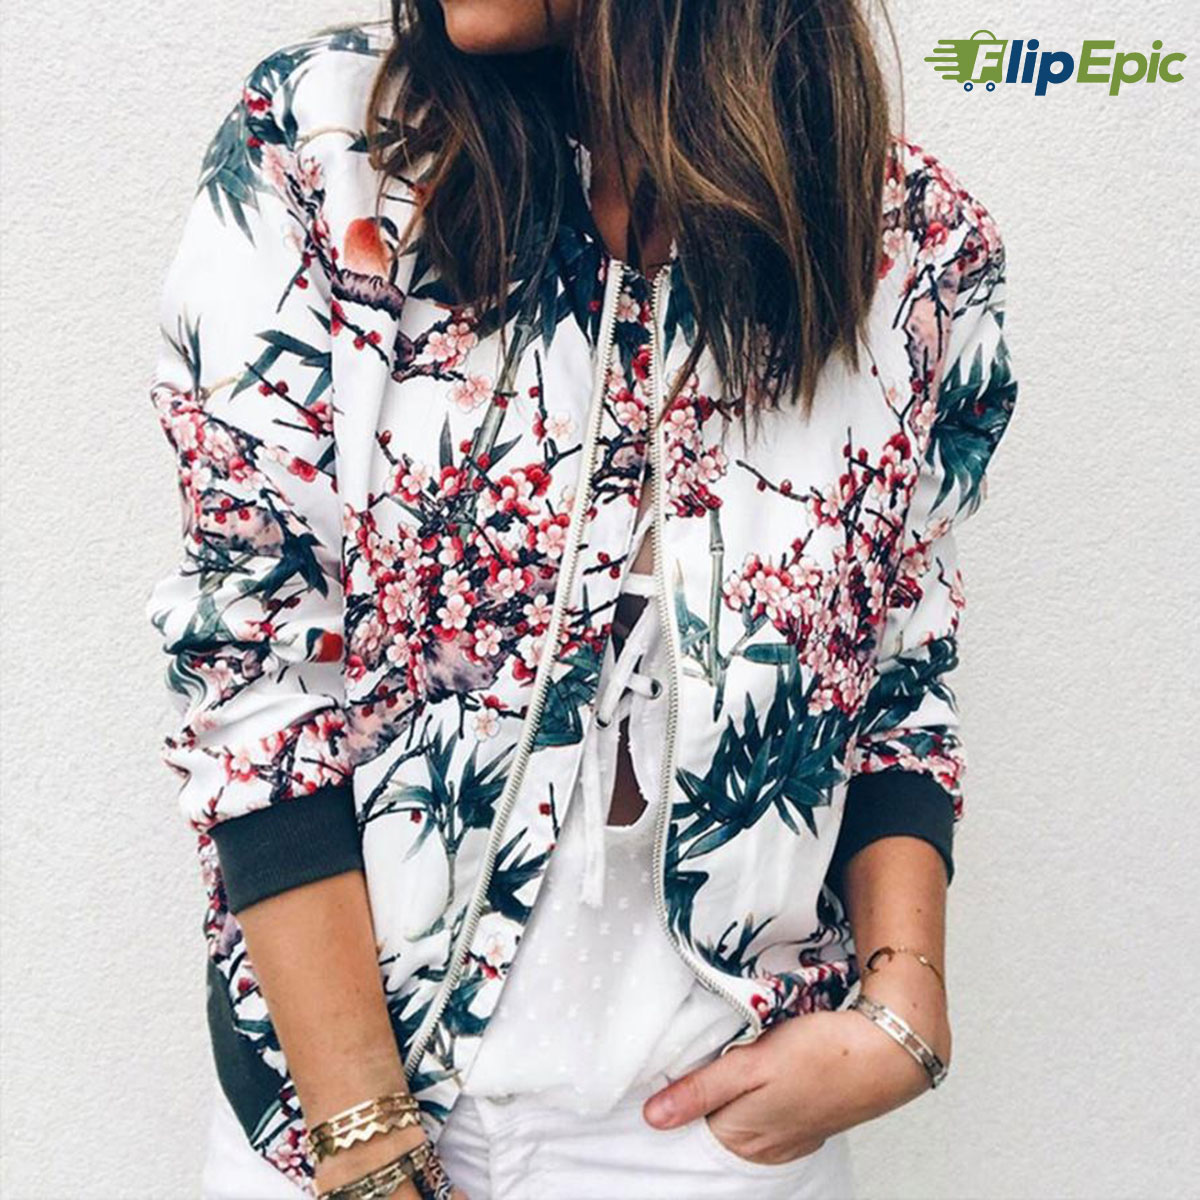 Womens Retro Outerwear Jacket with Floral Zipper Up Just click... https://bit.ly/2QBXhOQ #streetfashion #woman #dresses #fashion #style #shopping #girl #winter #cloths #wintermakeup #clothshoppic.twitter.com/Jj2RDVyjBj